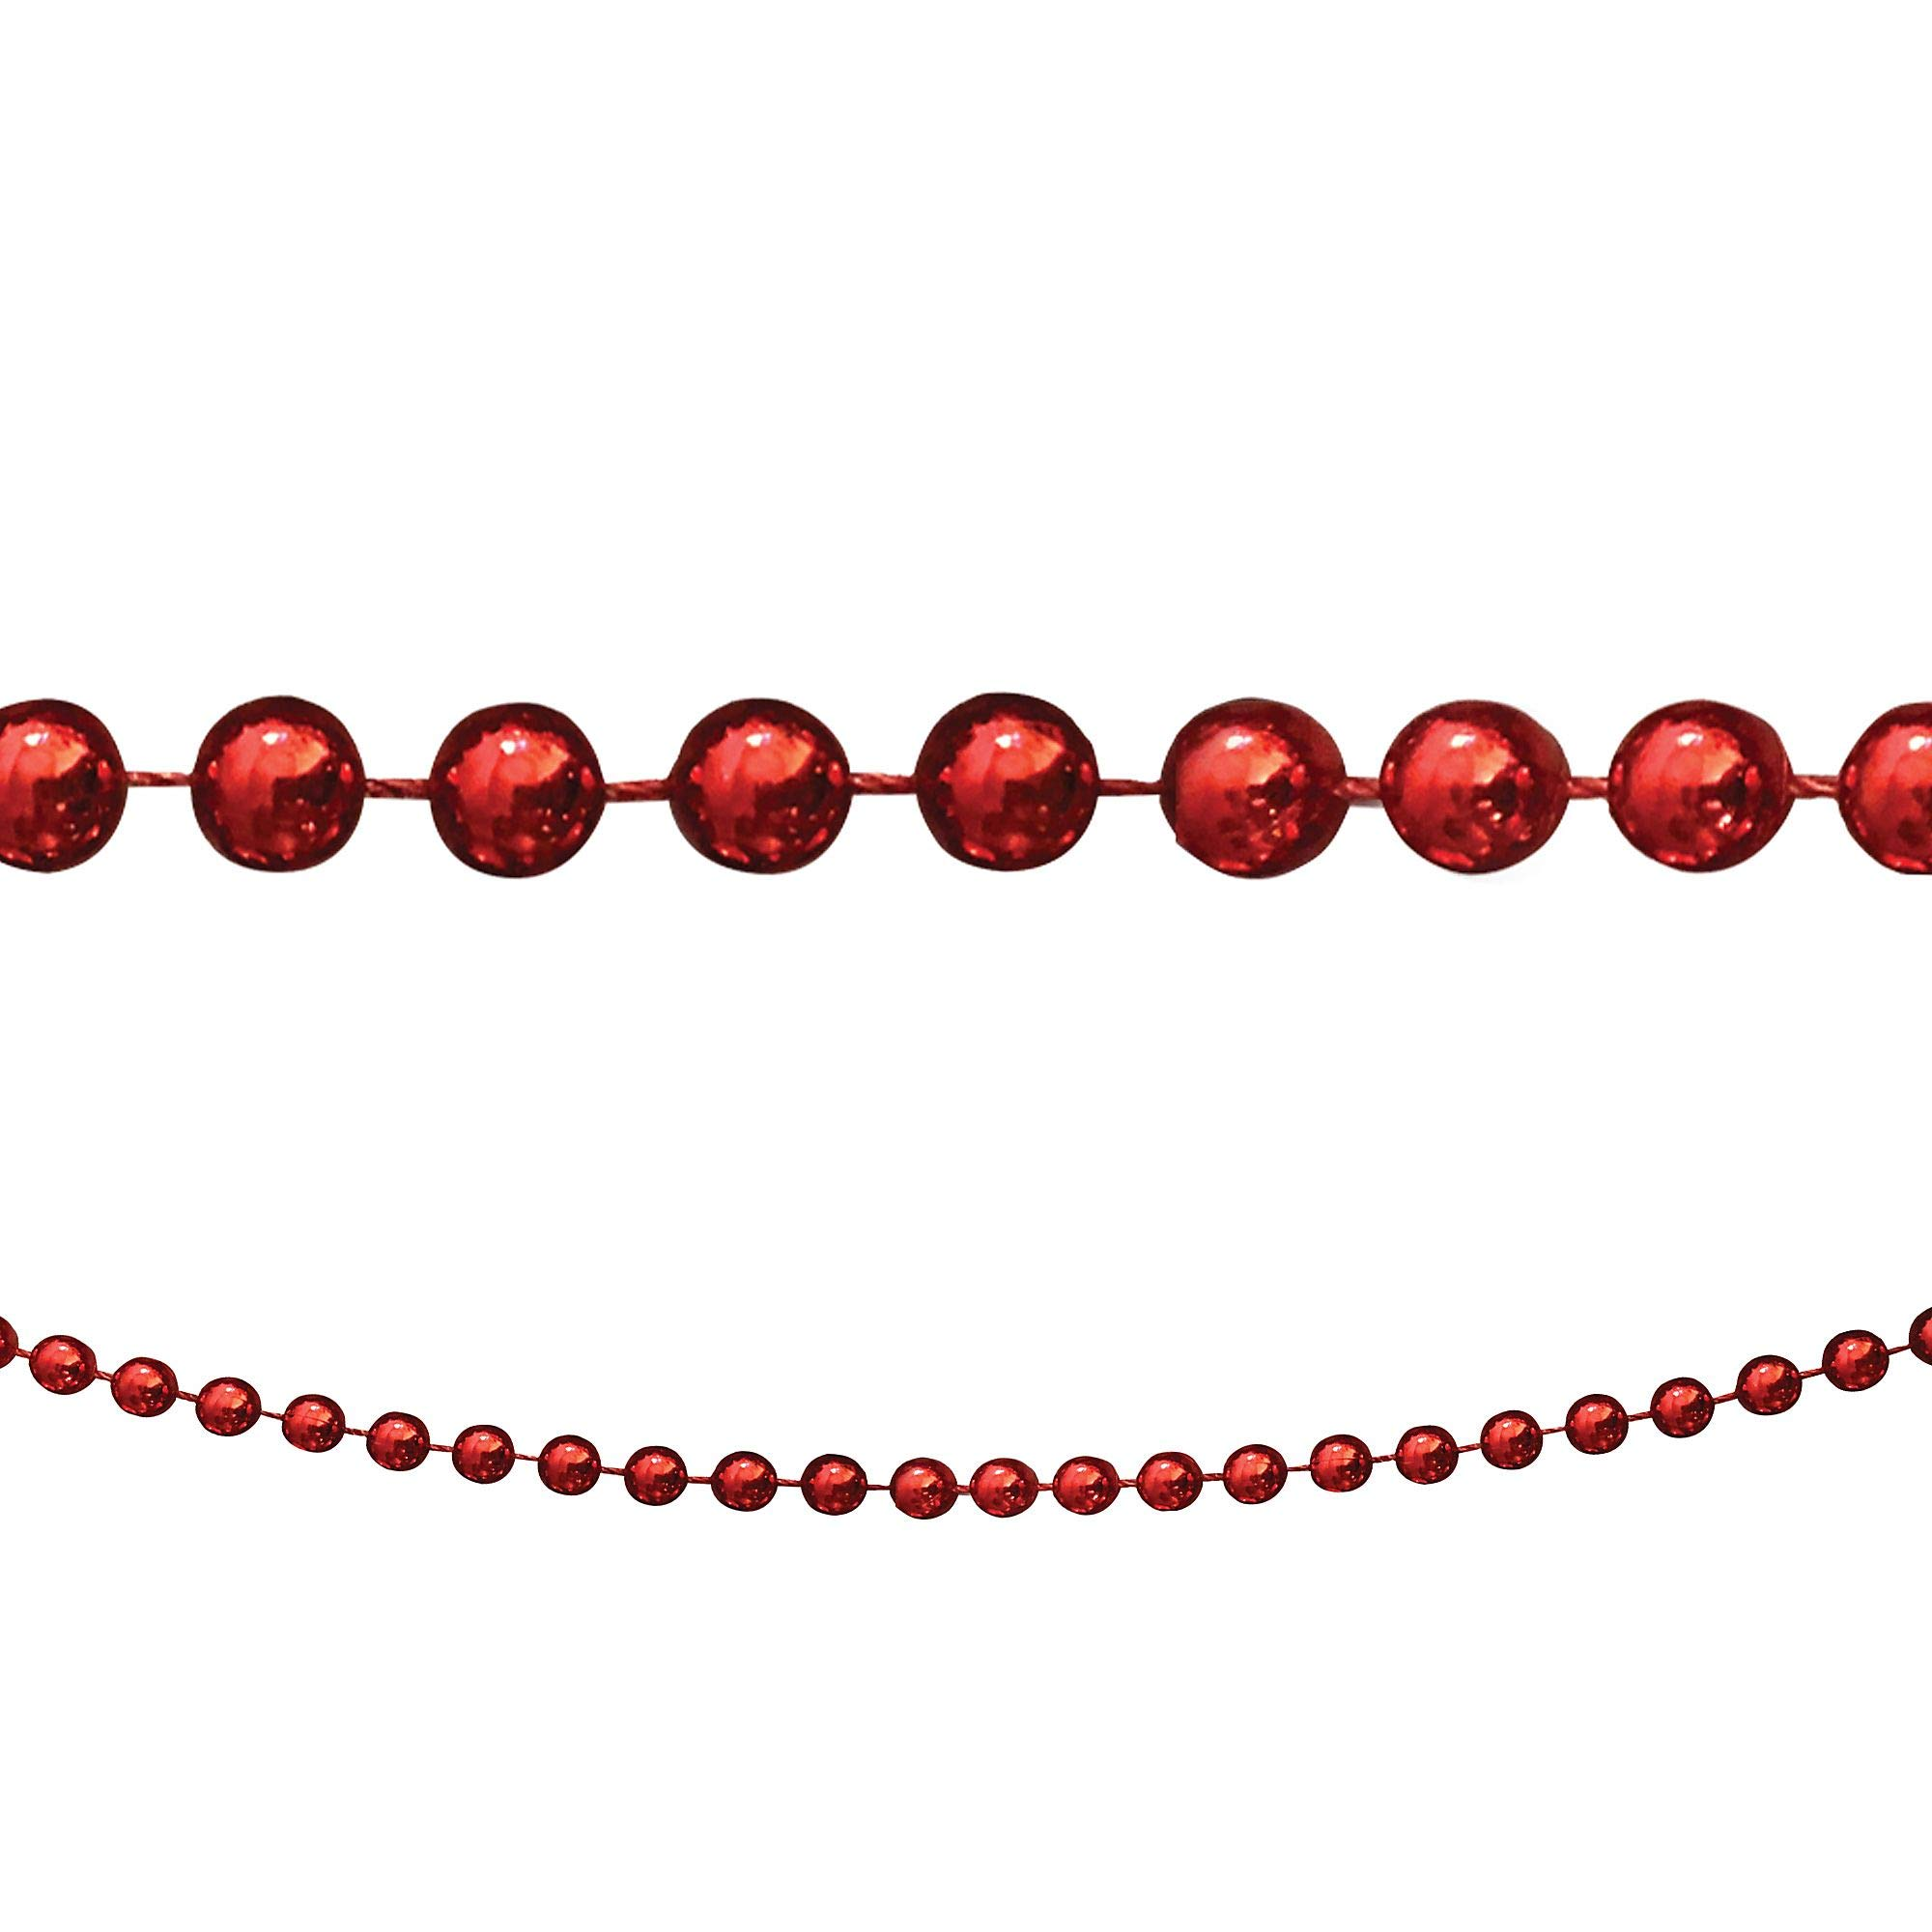 Country Silk Red Bead Garland, Christmas Decorations, 8' L